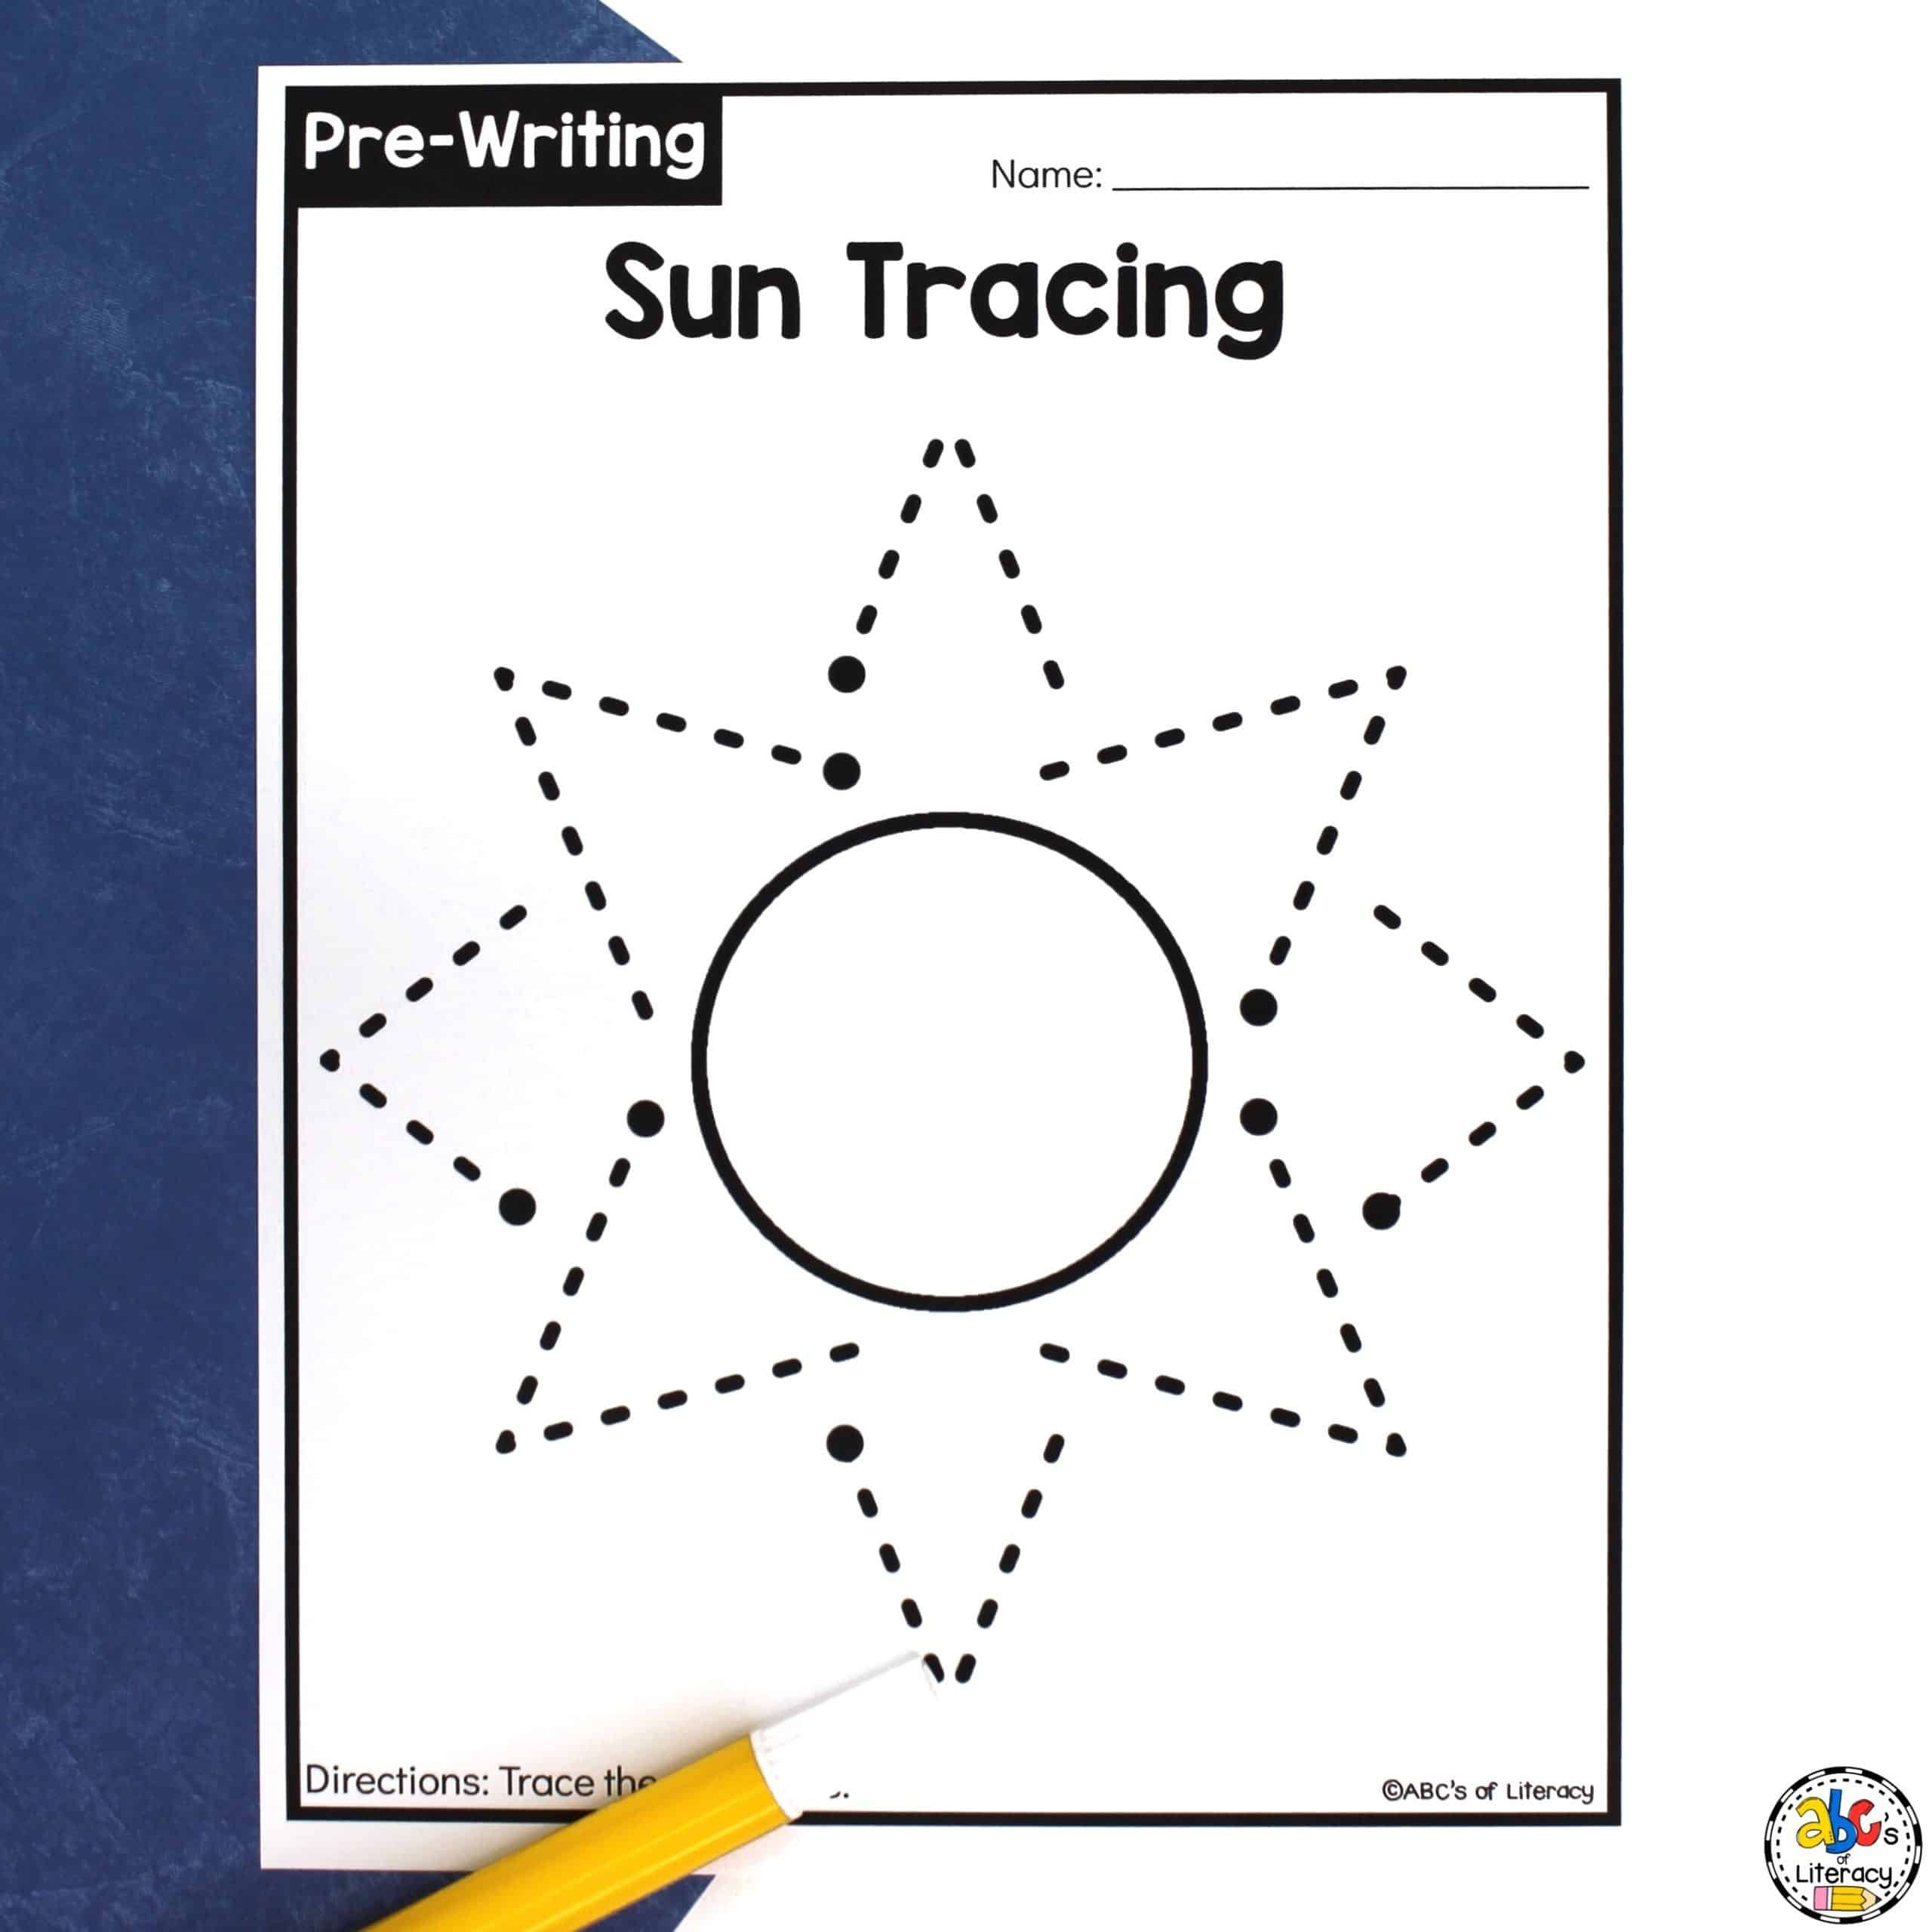 Early Childhood Worksheets Sun Tracing Worksheets Pre Writing Activity for Preschoolers